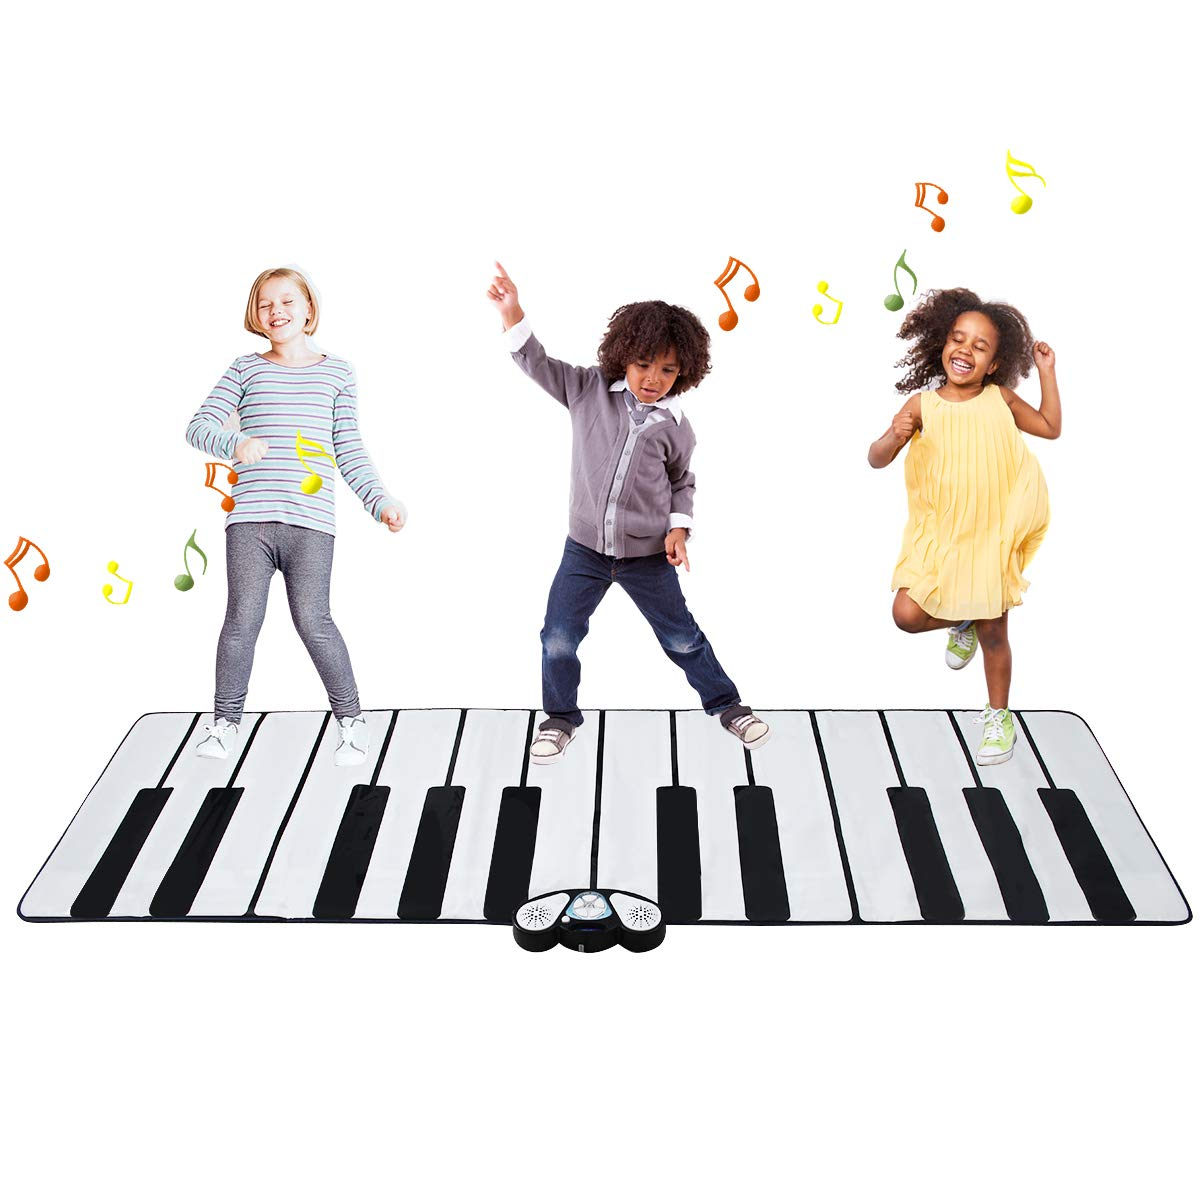 Costzon Giant Keyboard Playmat, 24 Keys Piano Play Mat, Foldable Activity Mat w/ 9 Selectable Musical Instruments, Play - Record - Playback - Demo - Tone Conversion Modes, Support MP3, Phone Play